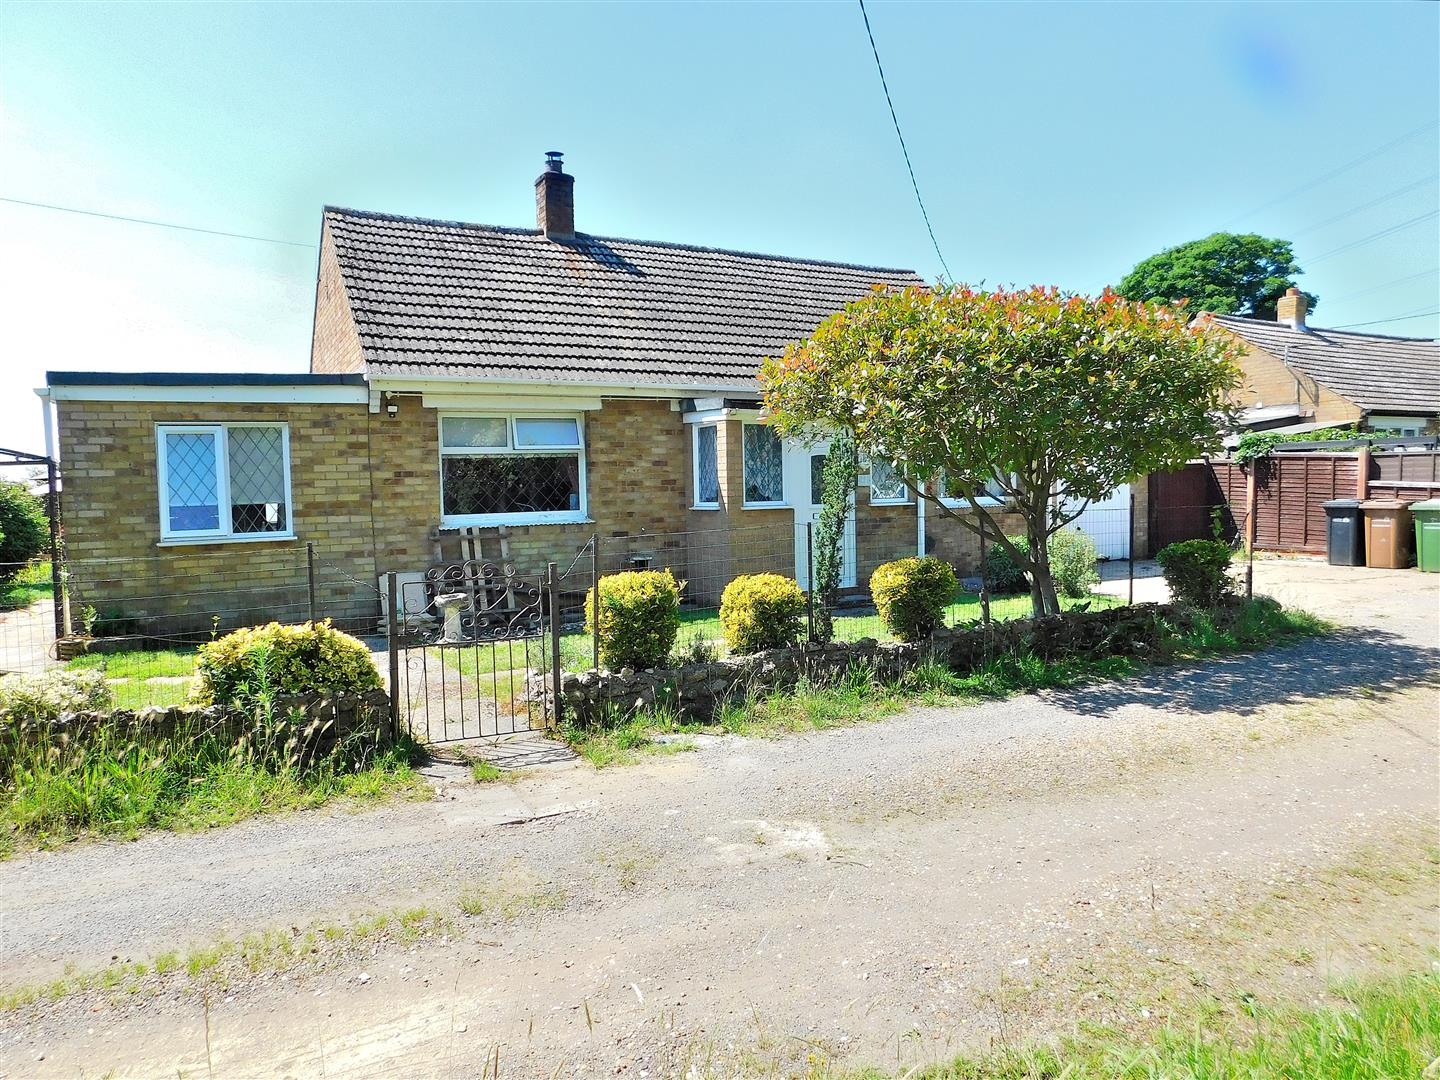 3 bed detached bungalow for sale in King's Lynn, PE33 0BG, PE33